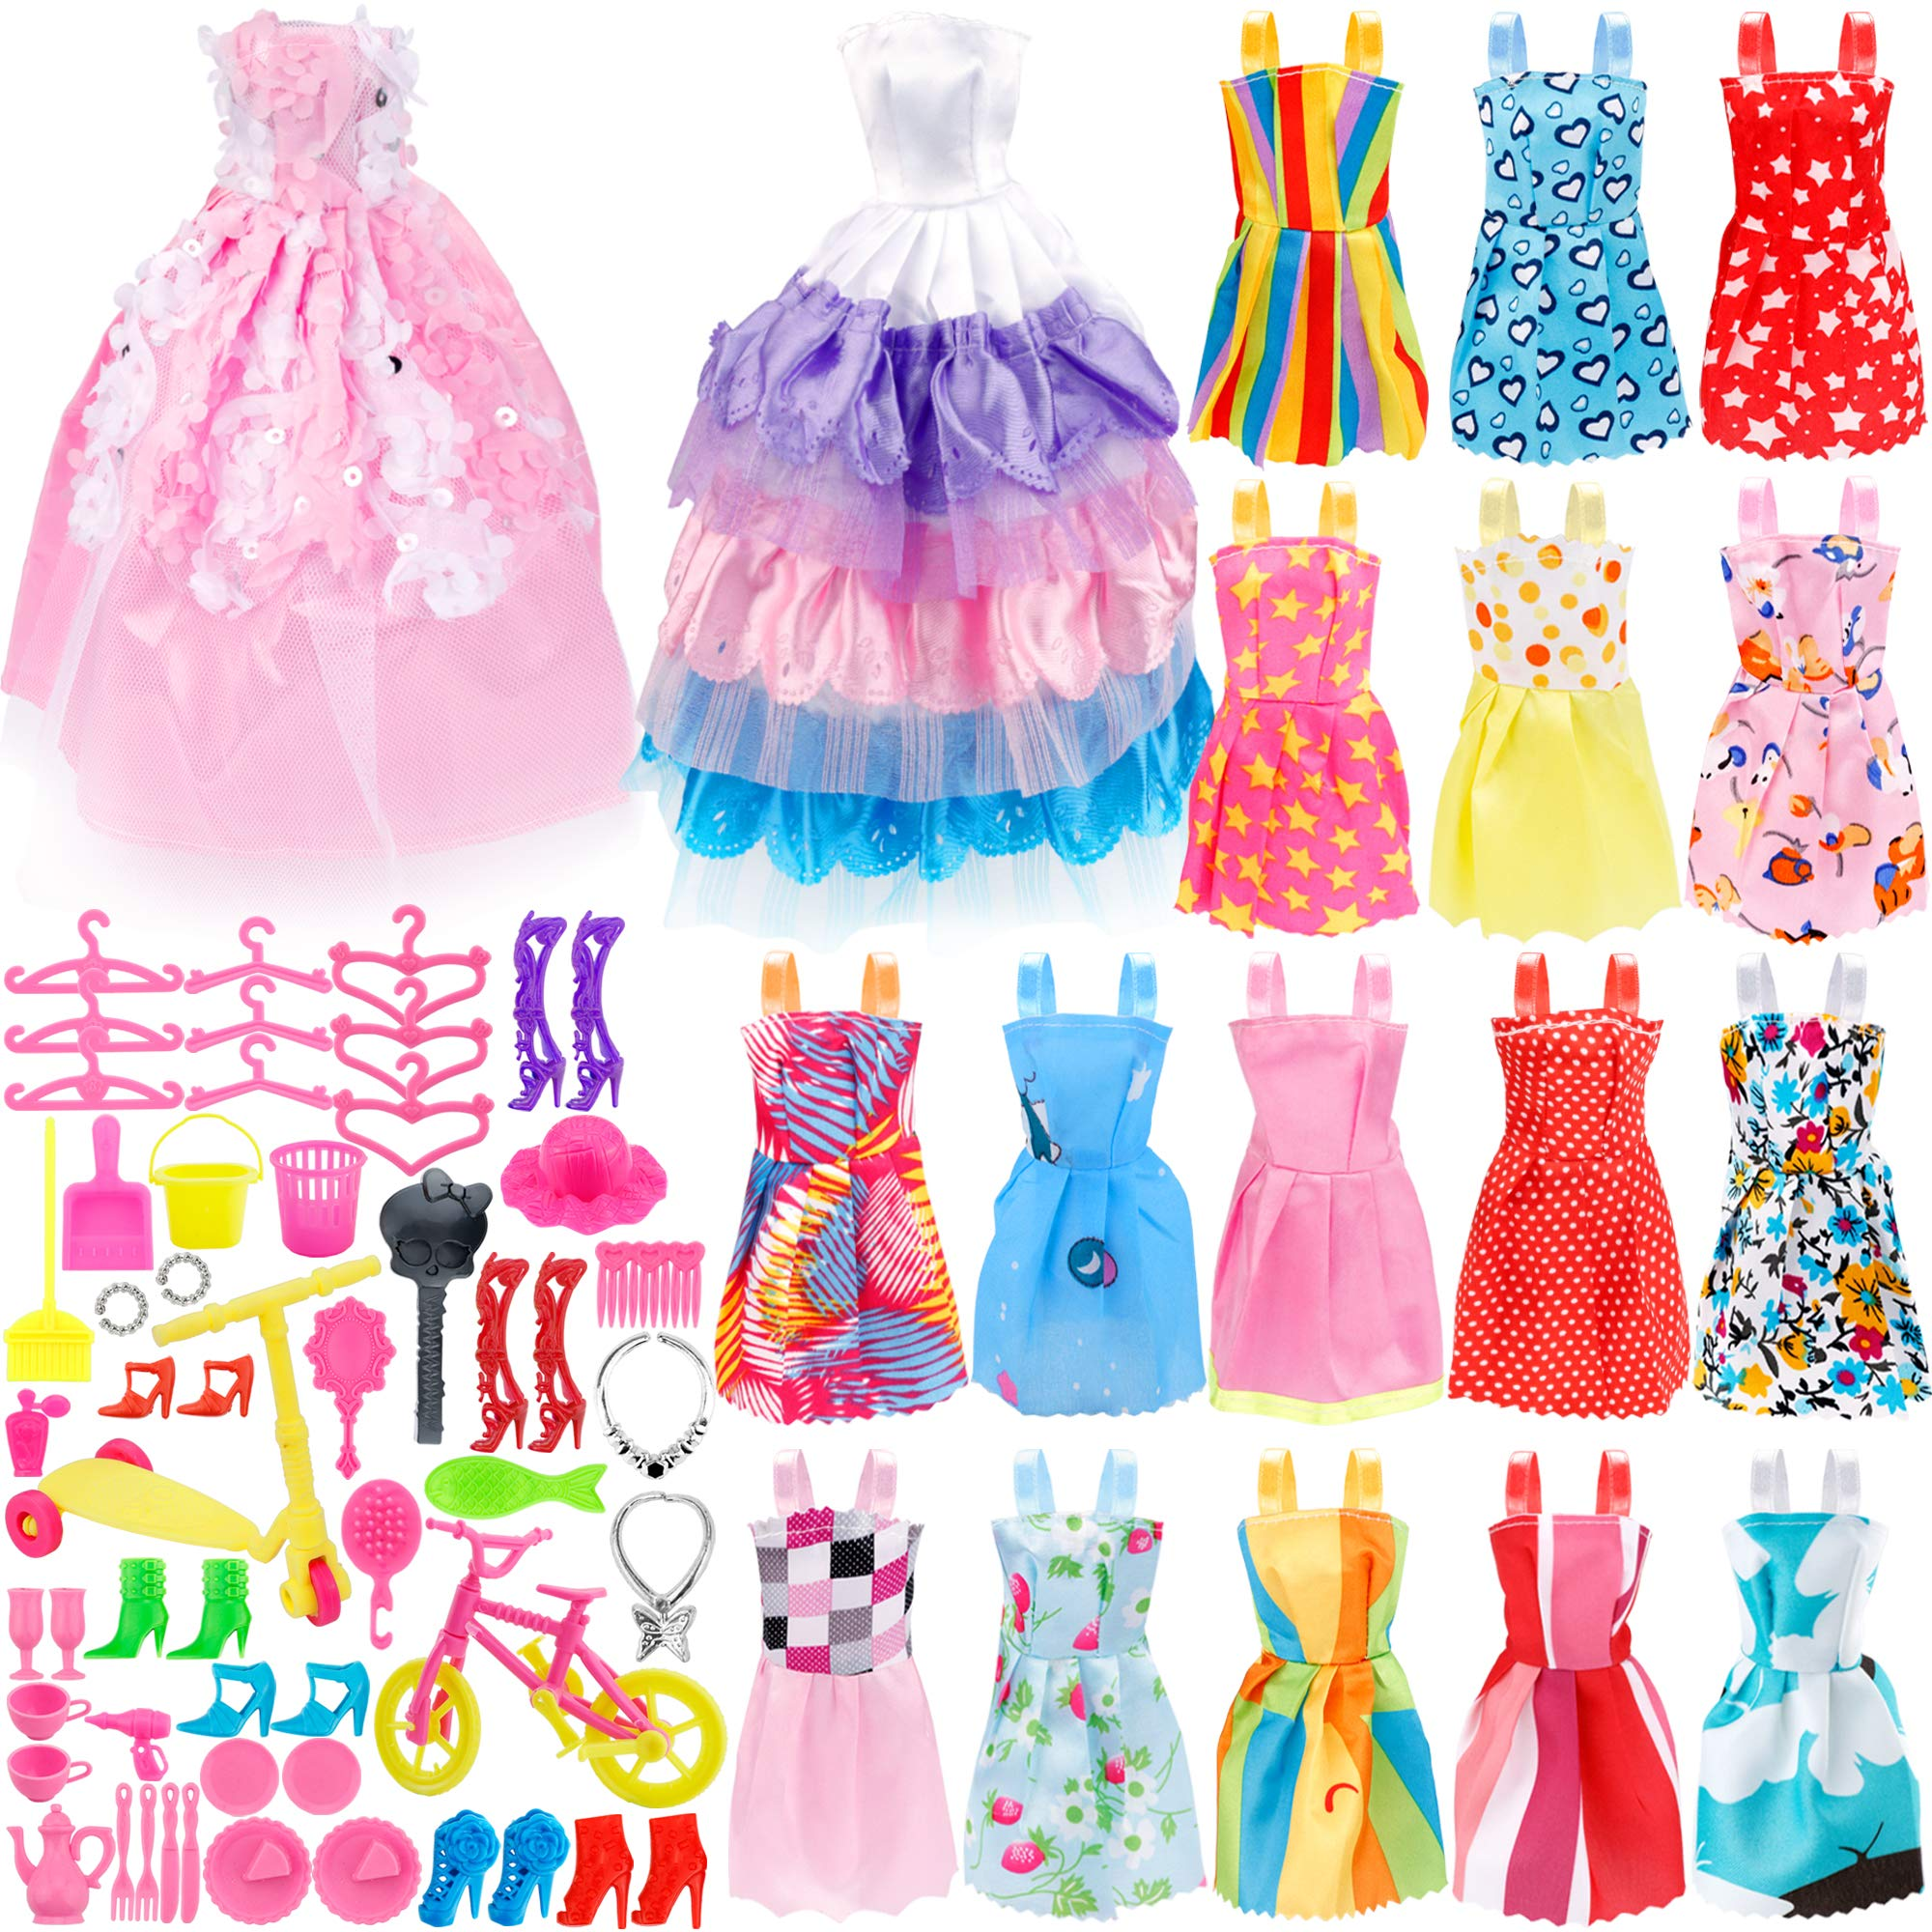 Blythe Clothes Patterns Pattern Collections